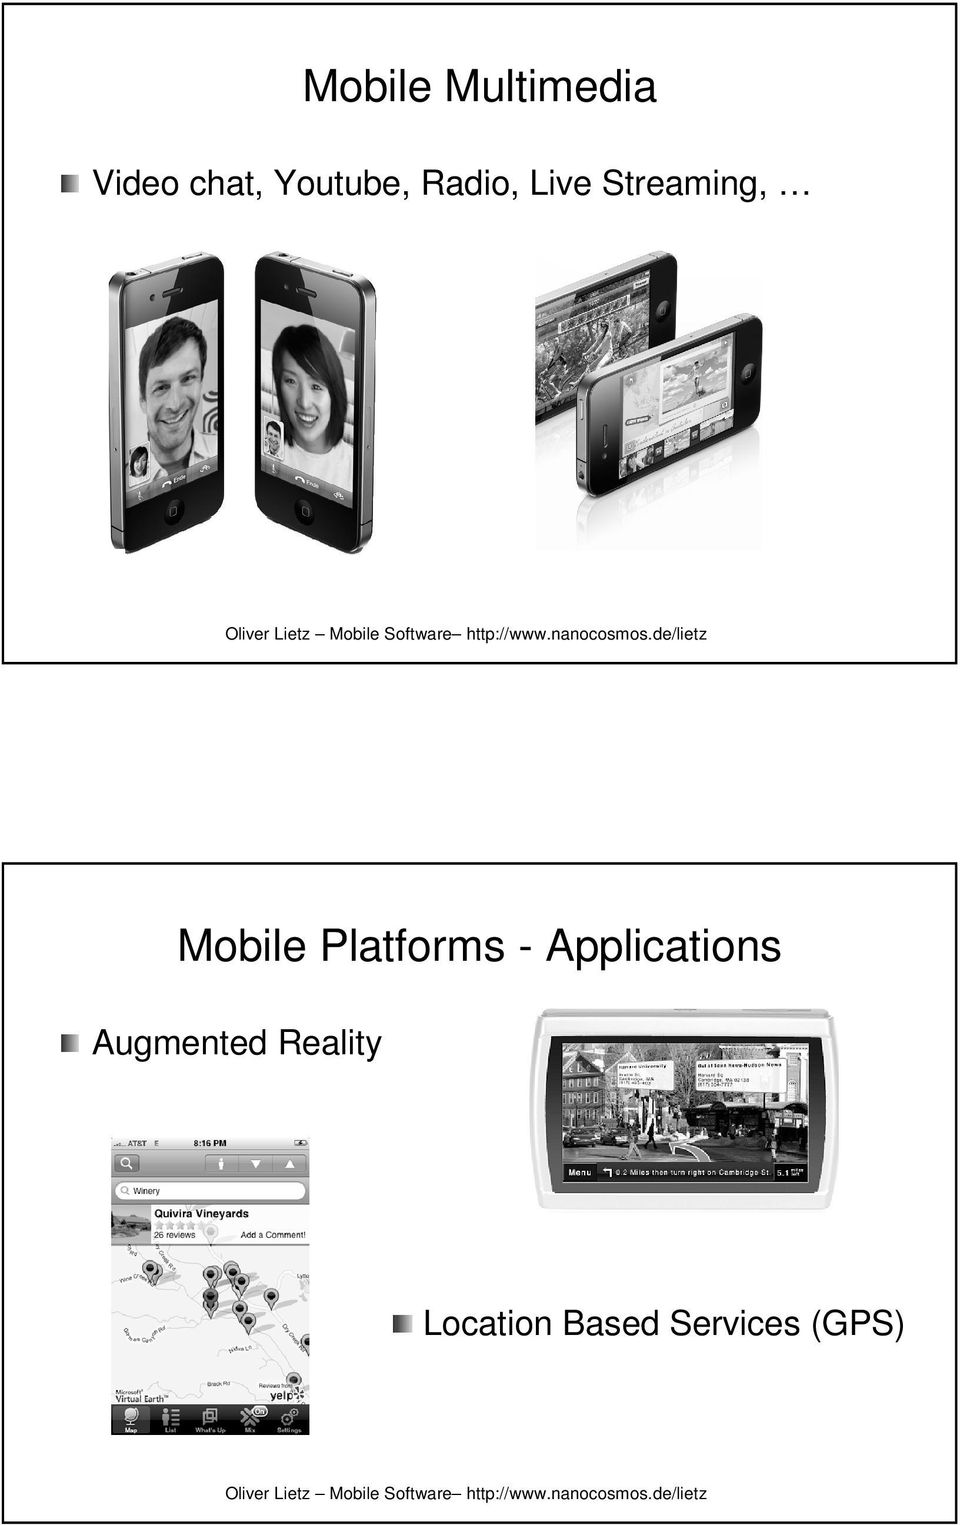 Mobile Platforms - Applications